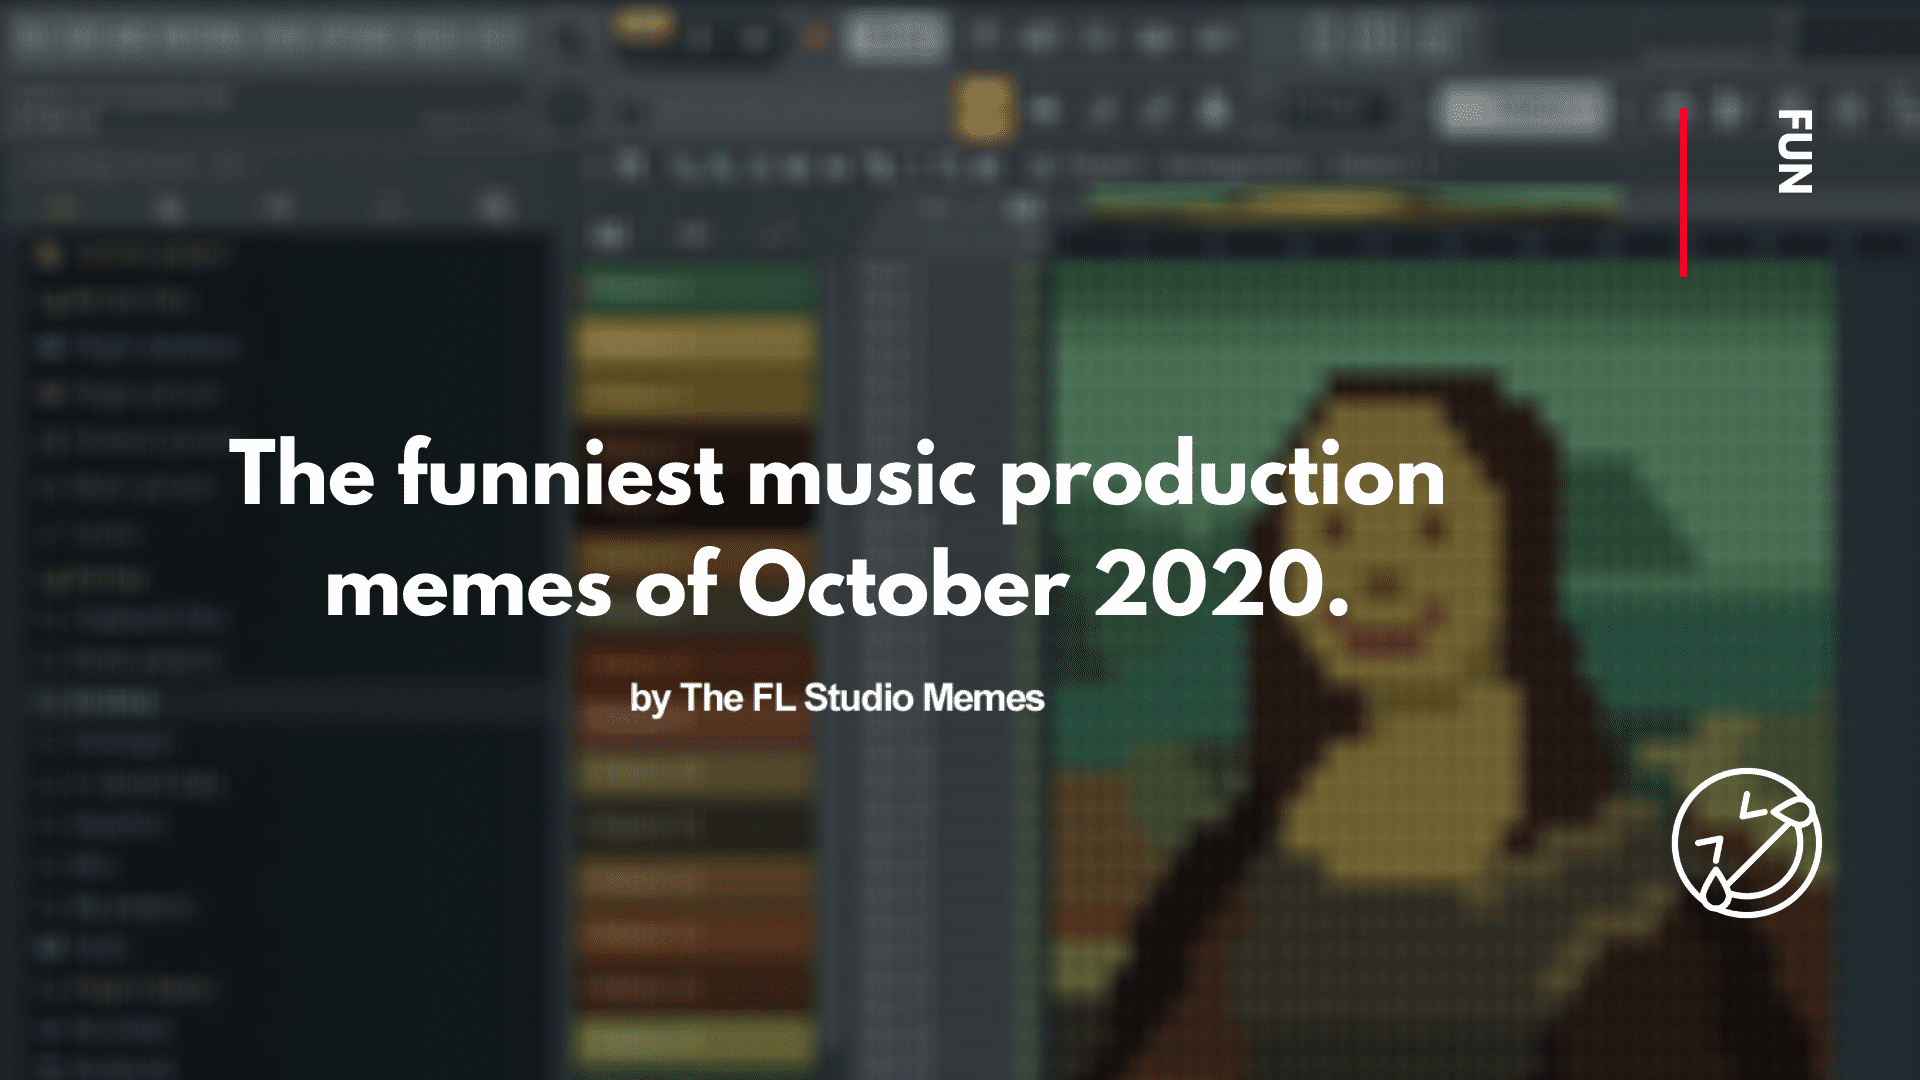 The funniest music production memes of October 2020.